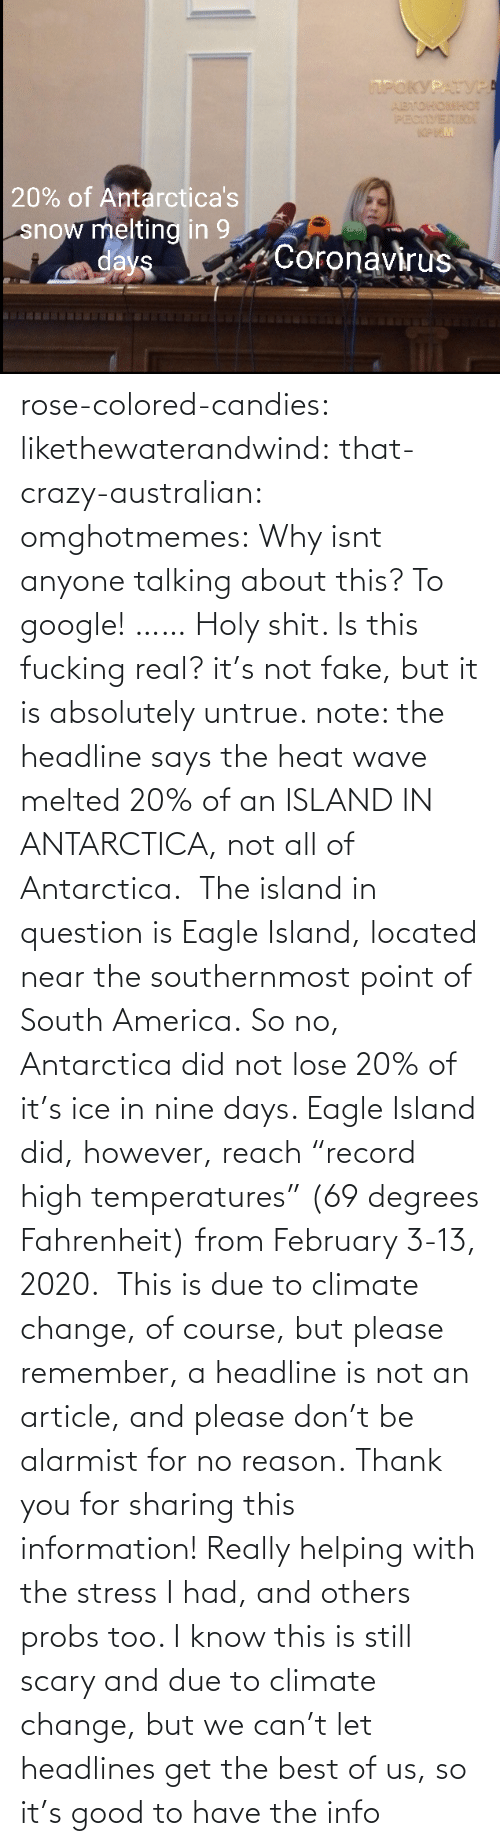 "helping: rose-colored-candies: likethewaterandwind:   that-crazy-australian:  omghotmemes:  Why isnt anyone talking about this?   To google!  ……   Holy shit. Is this fucking real?   it's not fake, but it is absolutely untrue. note: the headline says the heat wave melted 20% of an ISLAND IN ANTARCTICA, not all of Antarctica.  The island in question is Eagle Island, located near the southernmost point of South America. So no, Antarctica did not lose 20% of it's ice in nine days. Eagle Island did, however, reach ""record high temperatures"" (69 degrees Fahrenheit) from February 3-13, 2020.  This is due to climate change, of course, but please remember, a headline is not an article, and please don't be alarmist for no reason.    Thank you for sharing this information! Really helping with the stress I had, and others probs too. I know this is still scary and due to climate change, but we can't let headlines get the best of us, so it's good to have the info"